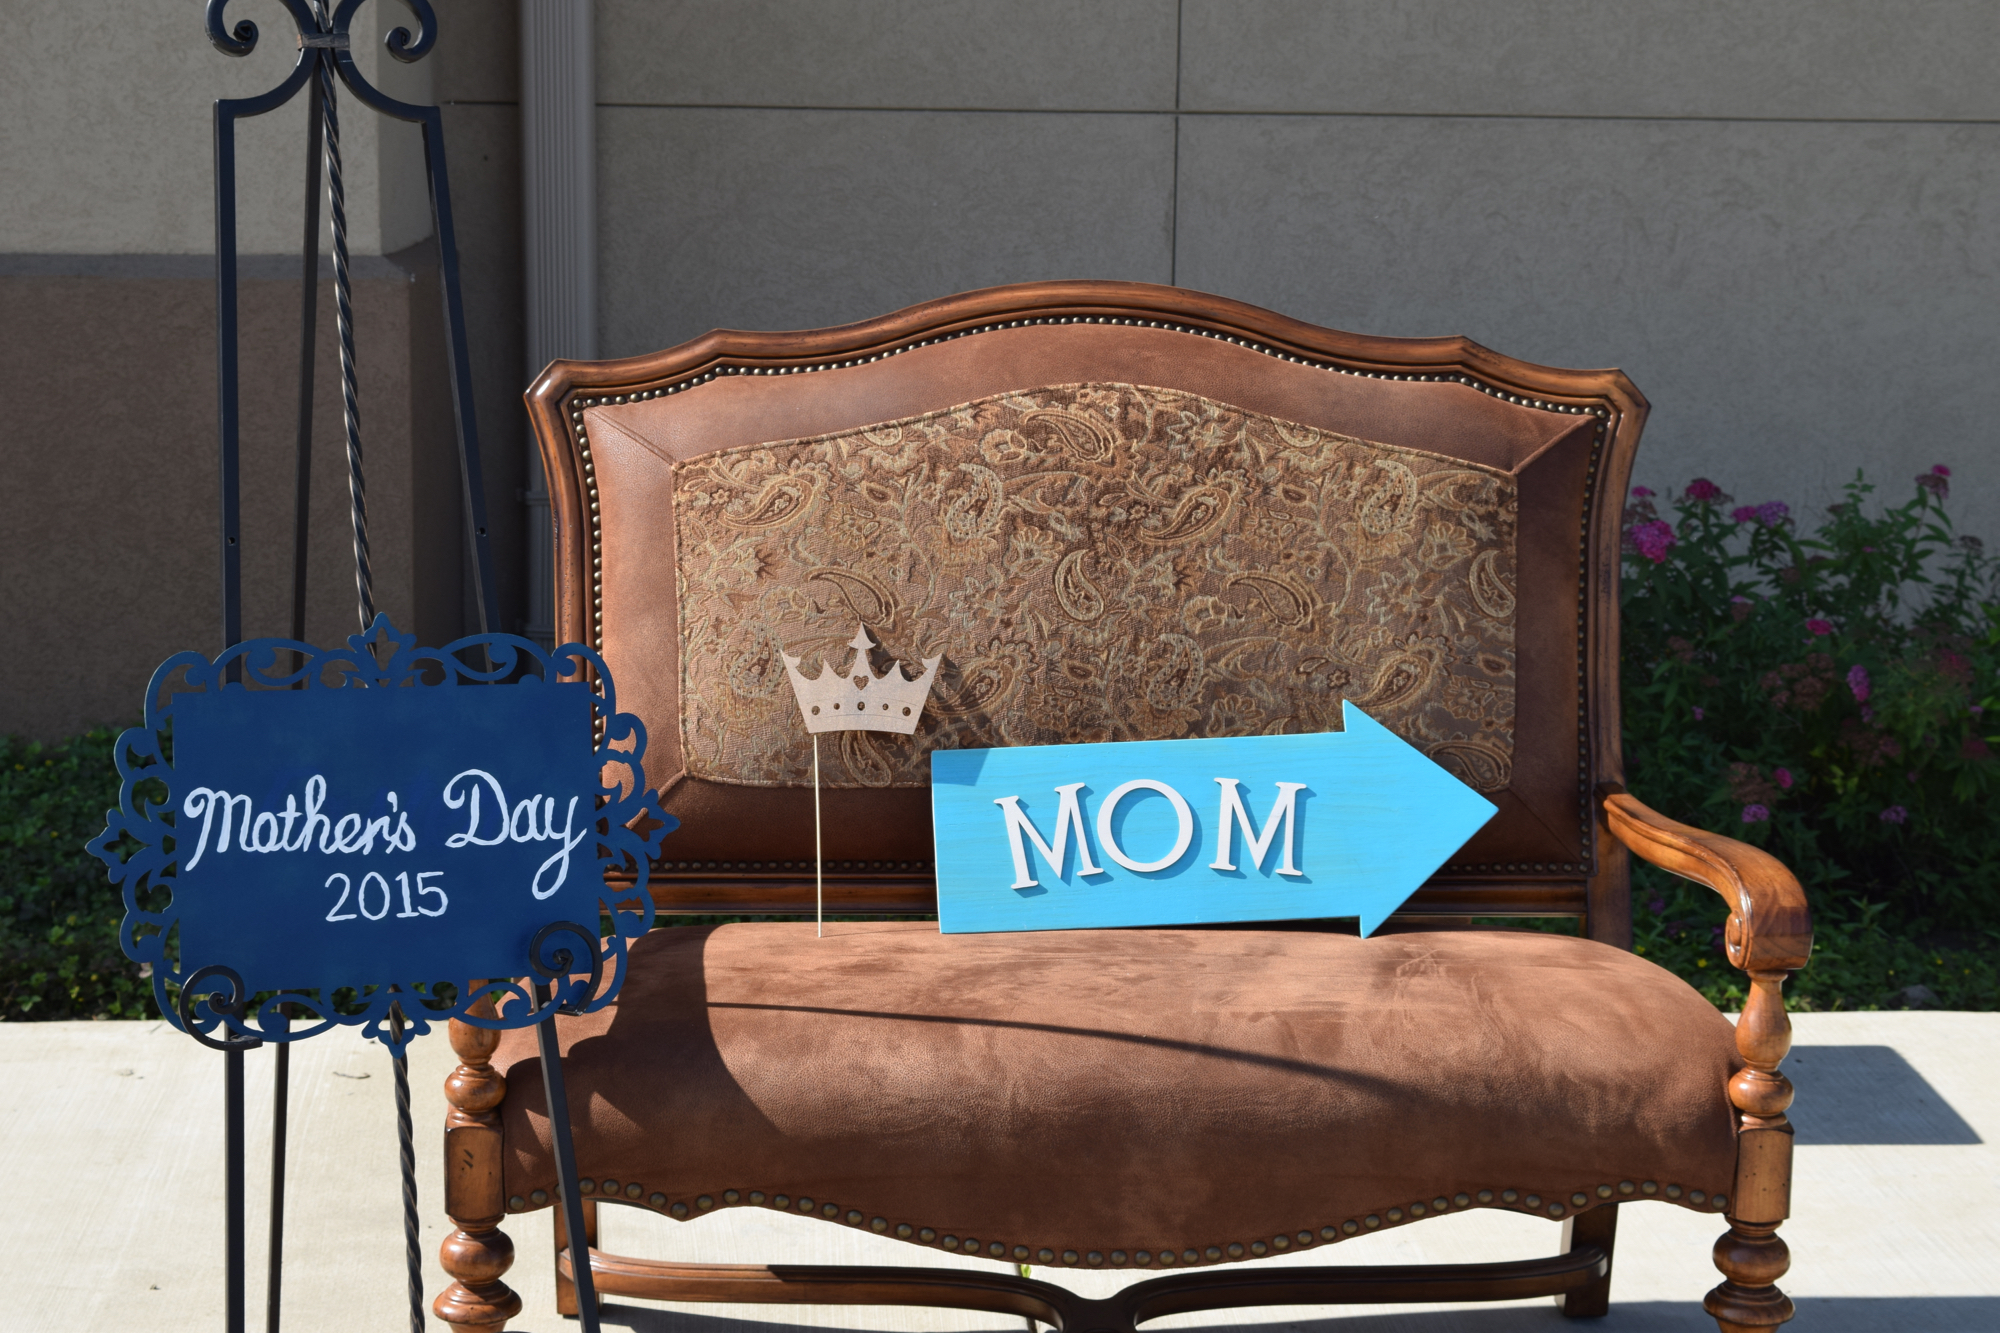 Mother's Day 2015 -